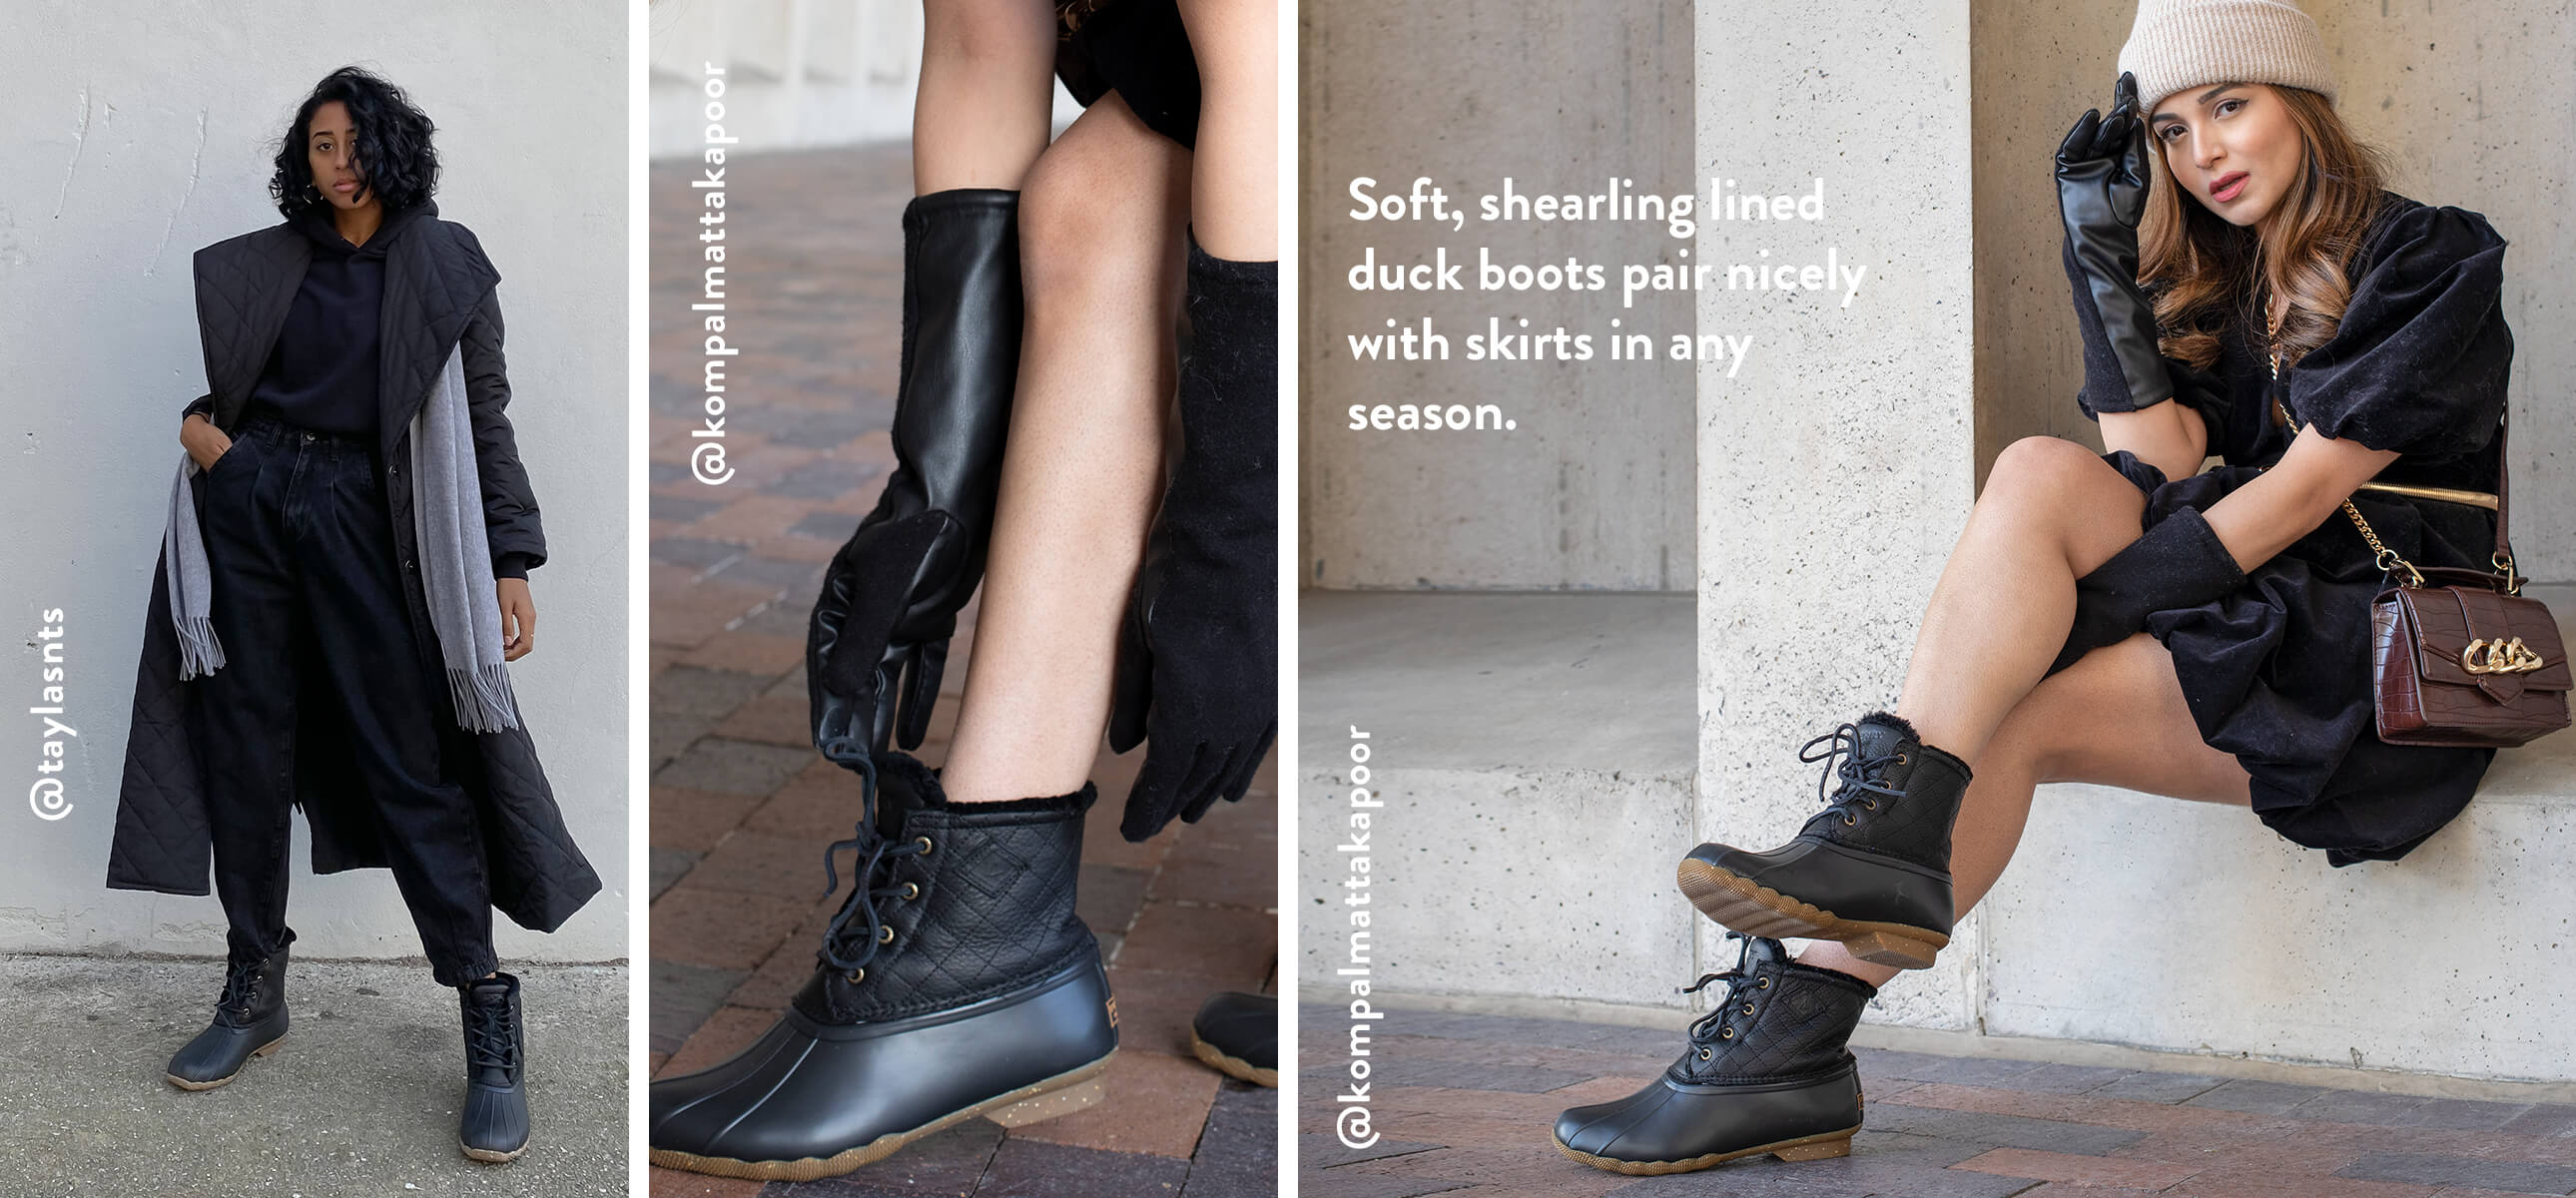 2 girls looking stylish in Sperry boots. @taylasnts and @kompalmattakapoor.